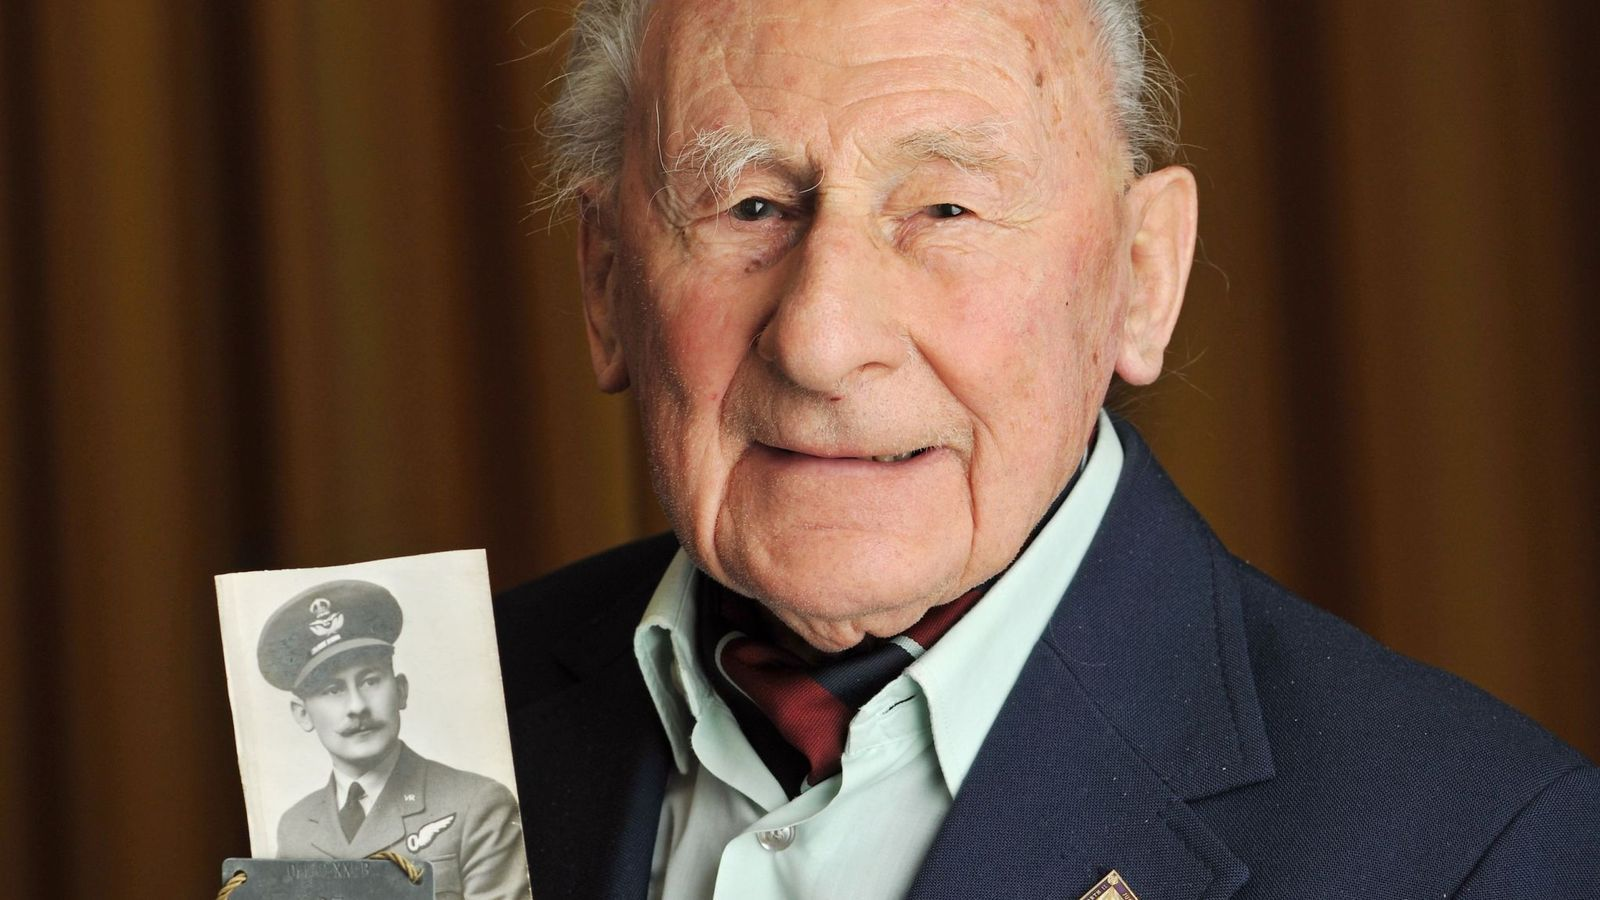 my-amigo.com/#Sky 'Remarkable' British airman involved in Great Escape dies aged 101 Sky News